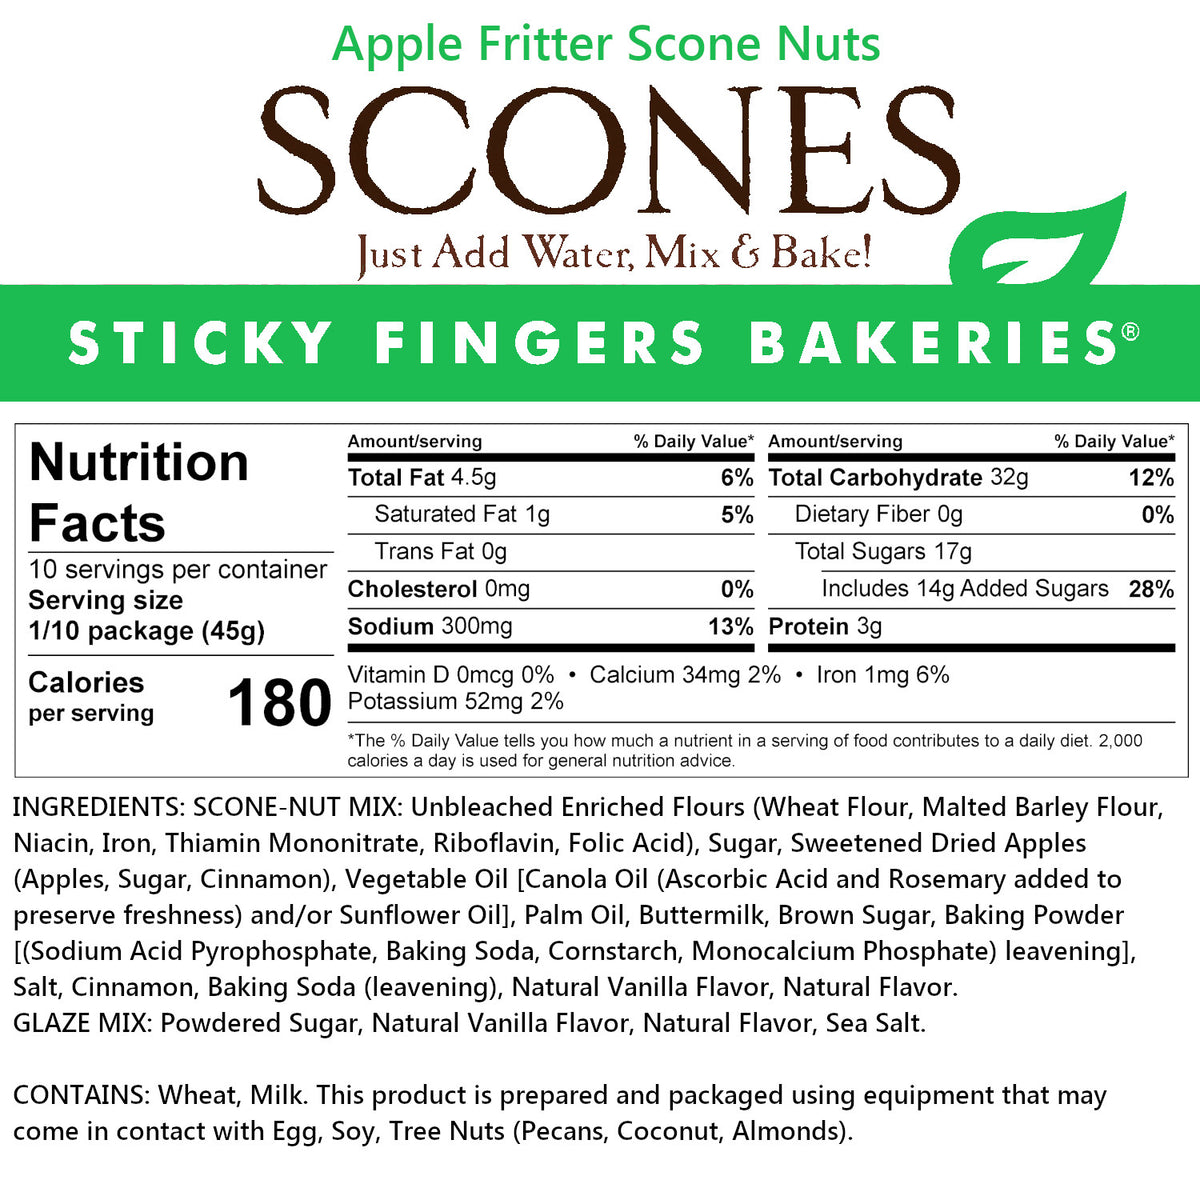 Apple Fritter Scone Nuts Mix Sticky Fingers Bakeries